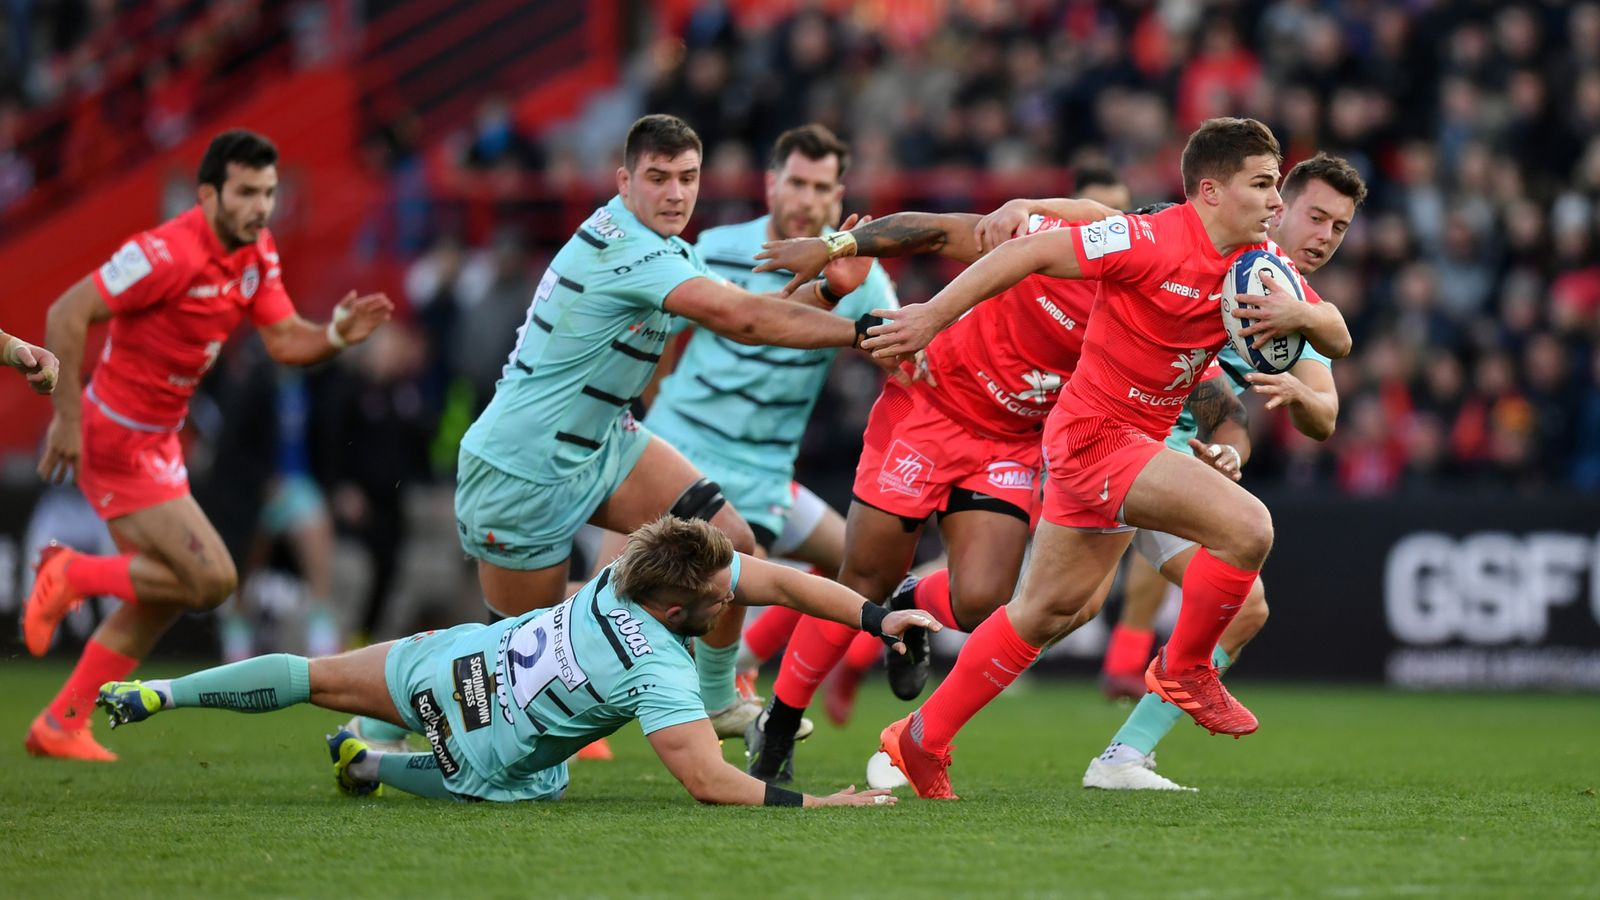 Toulouse 35-14 Gloucester: Gloucester's Champions Cup hopes ended